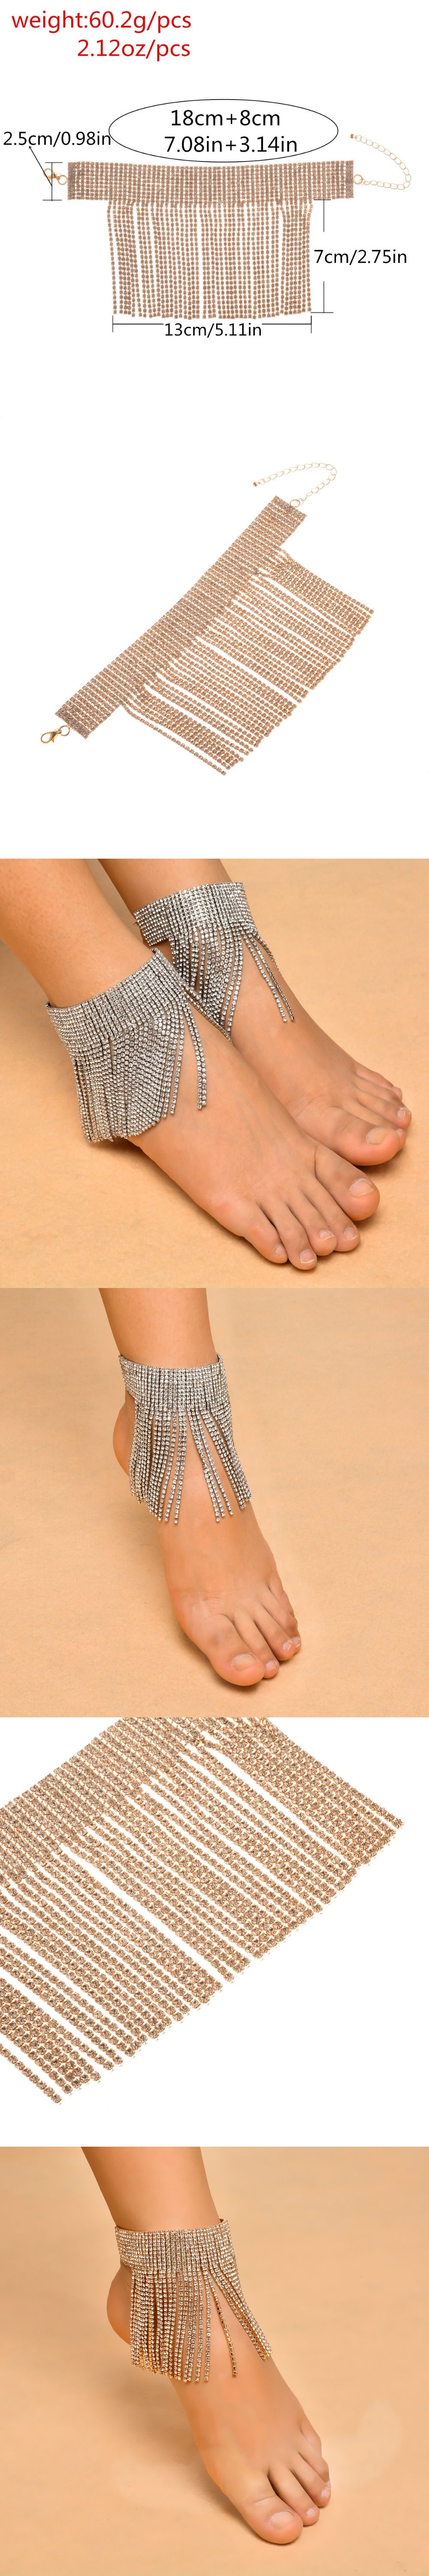 imitation boho pearls ankle for new if fashion pin sexy me wedding barefoot anklets women jewelry anklet bracelet